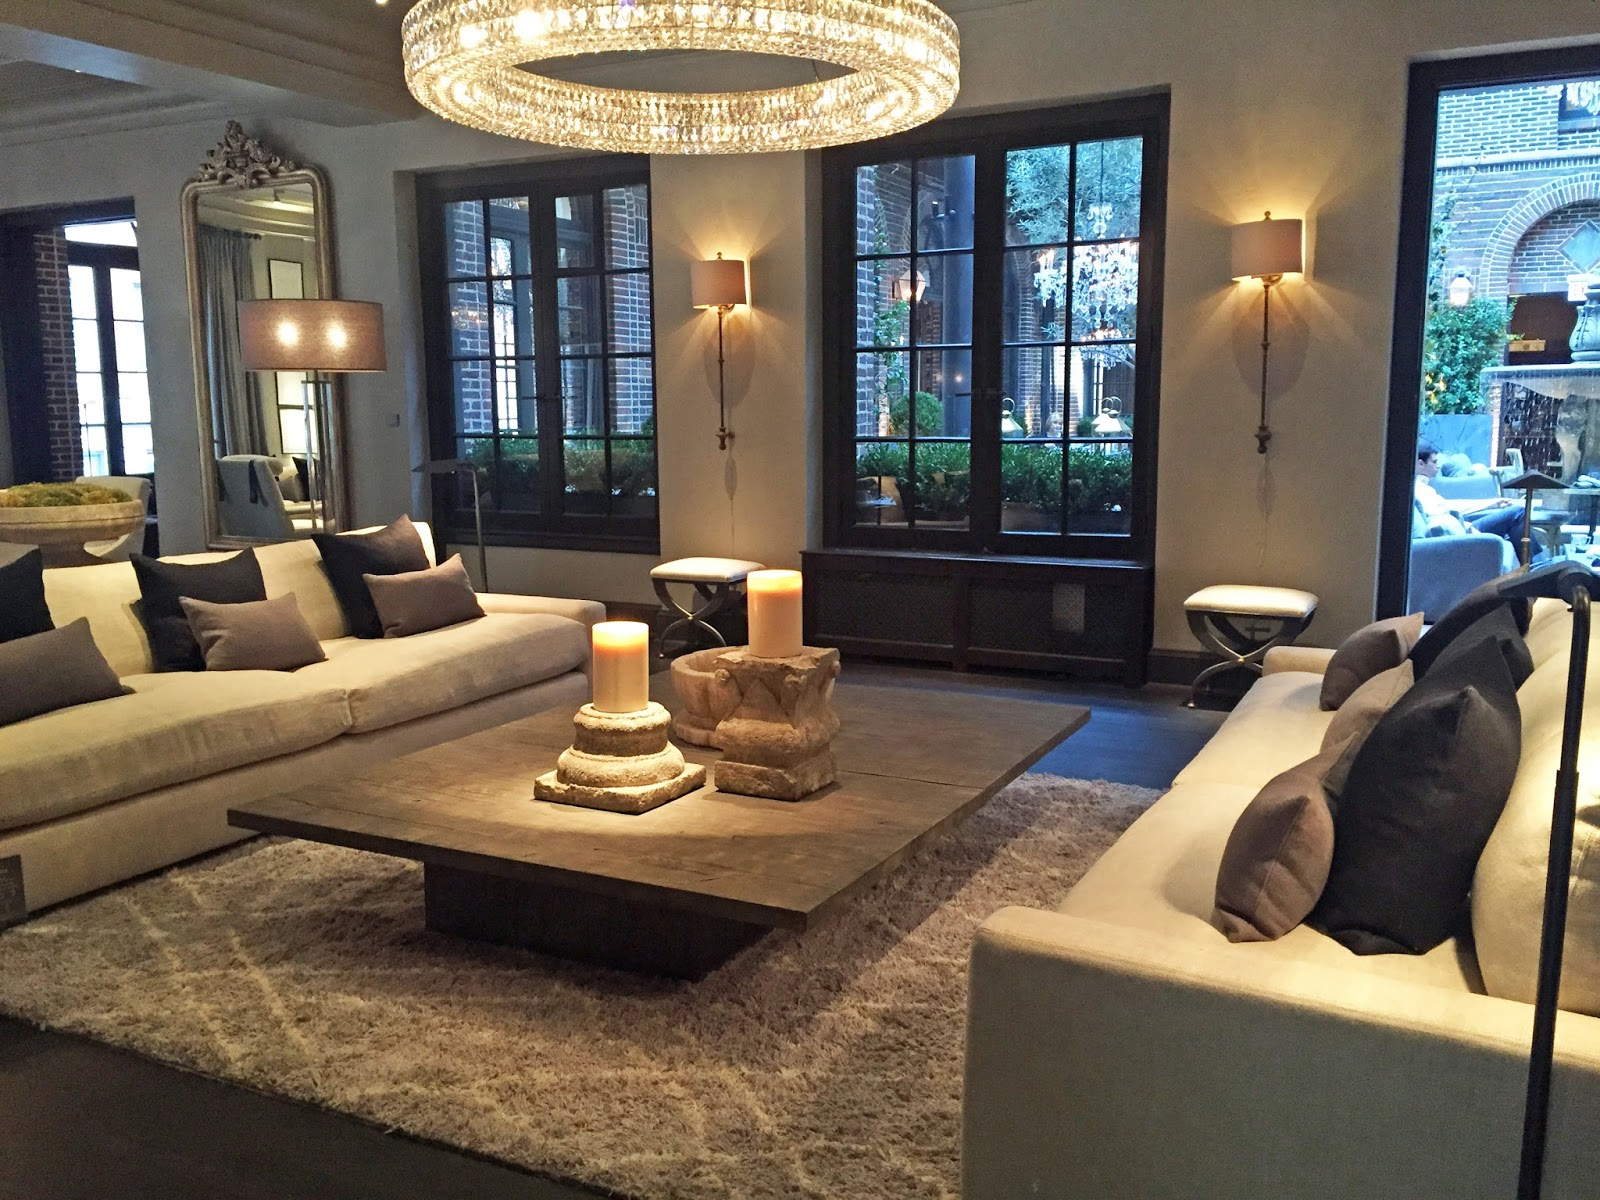 Romancing The Home: The Fabulous Restoration Hardware